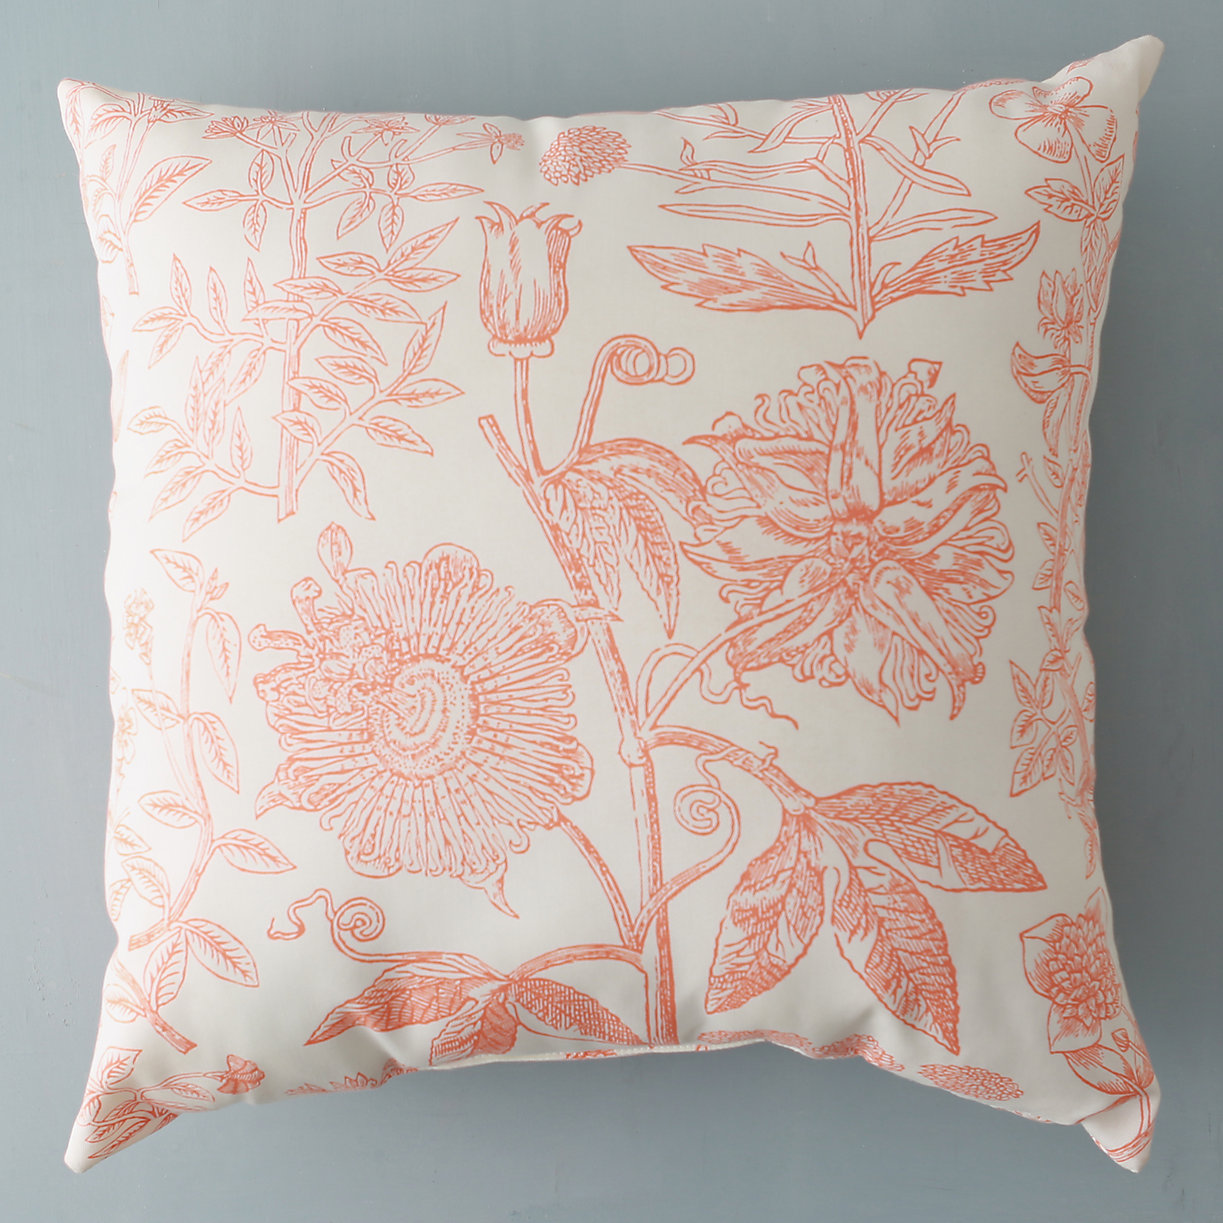 Outdoor botanical throw pillow